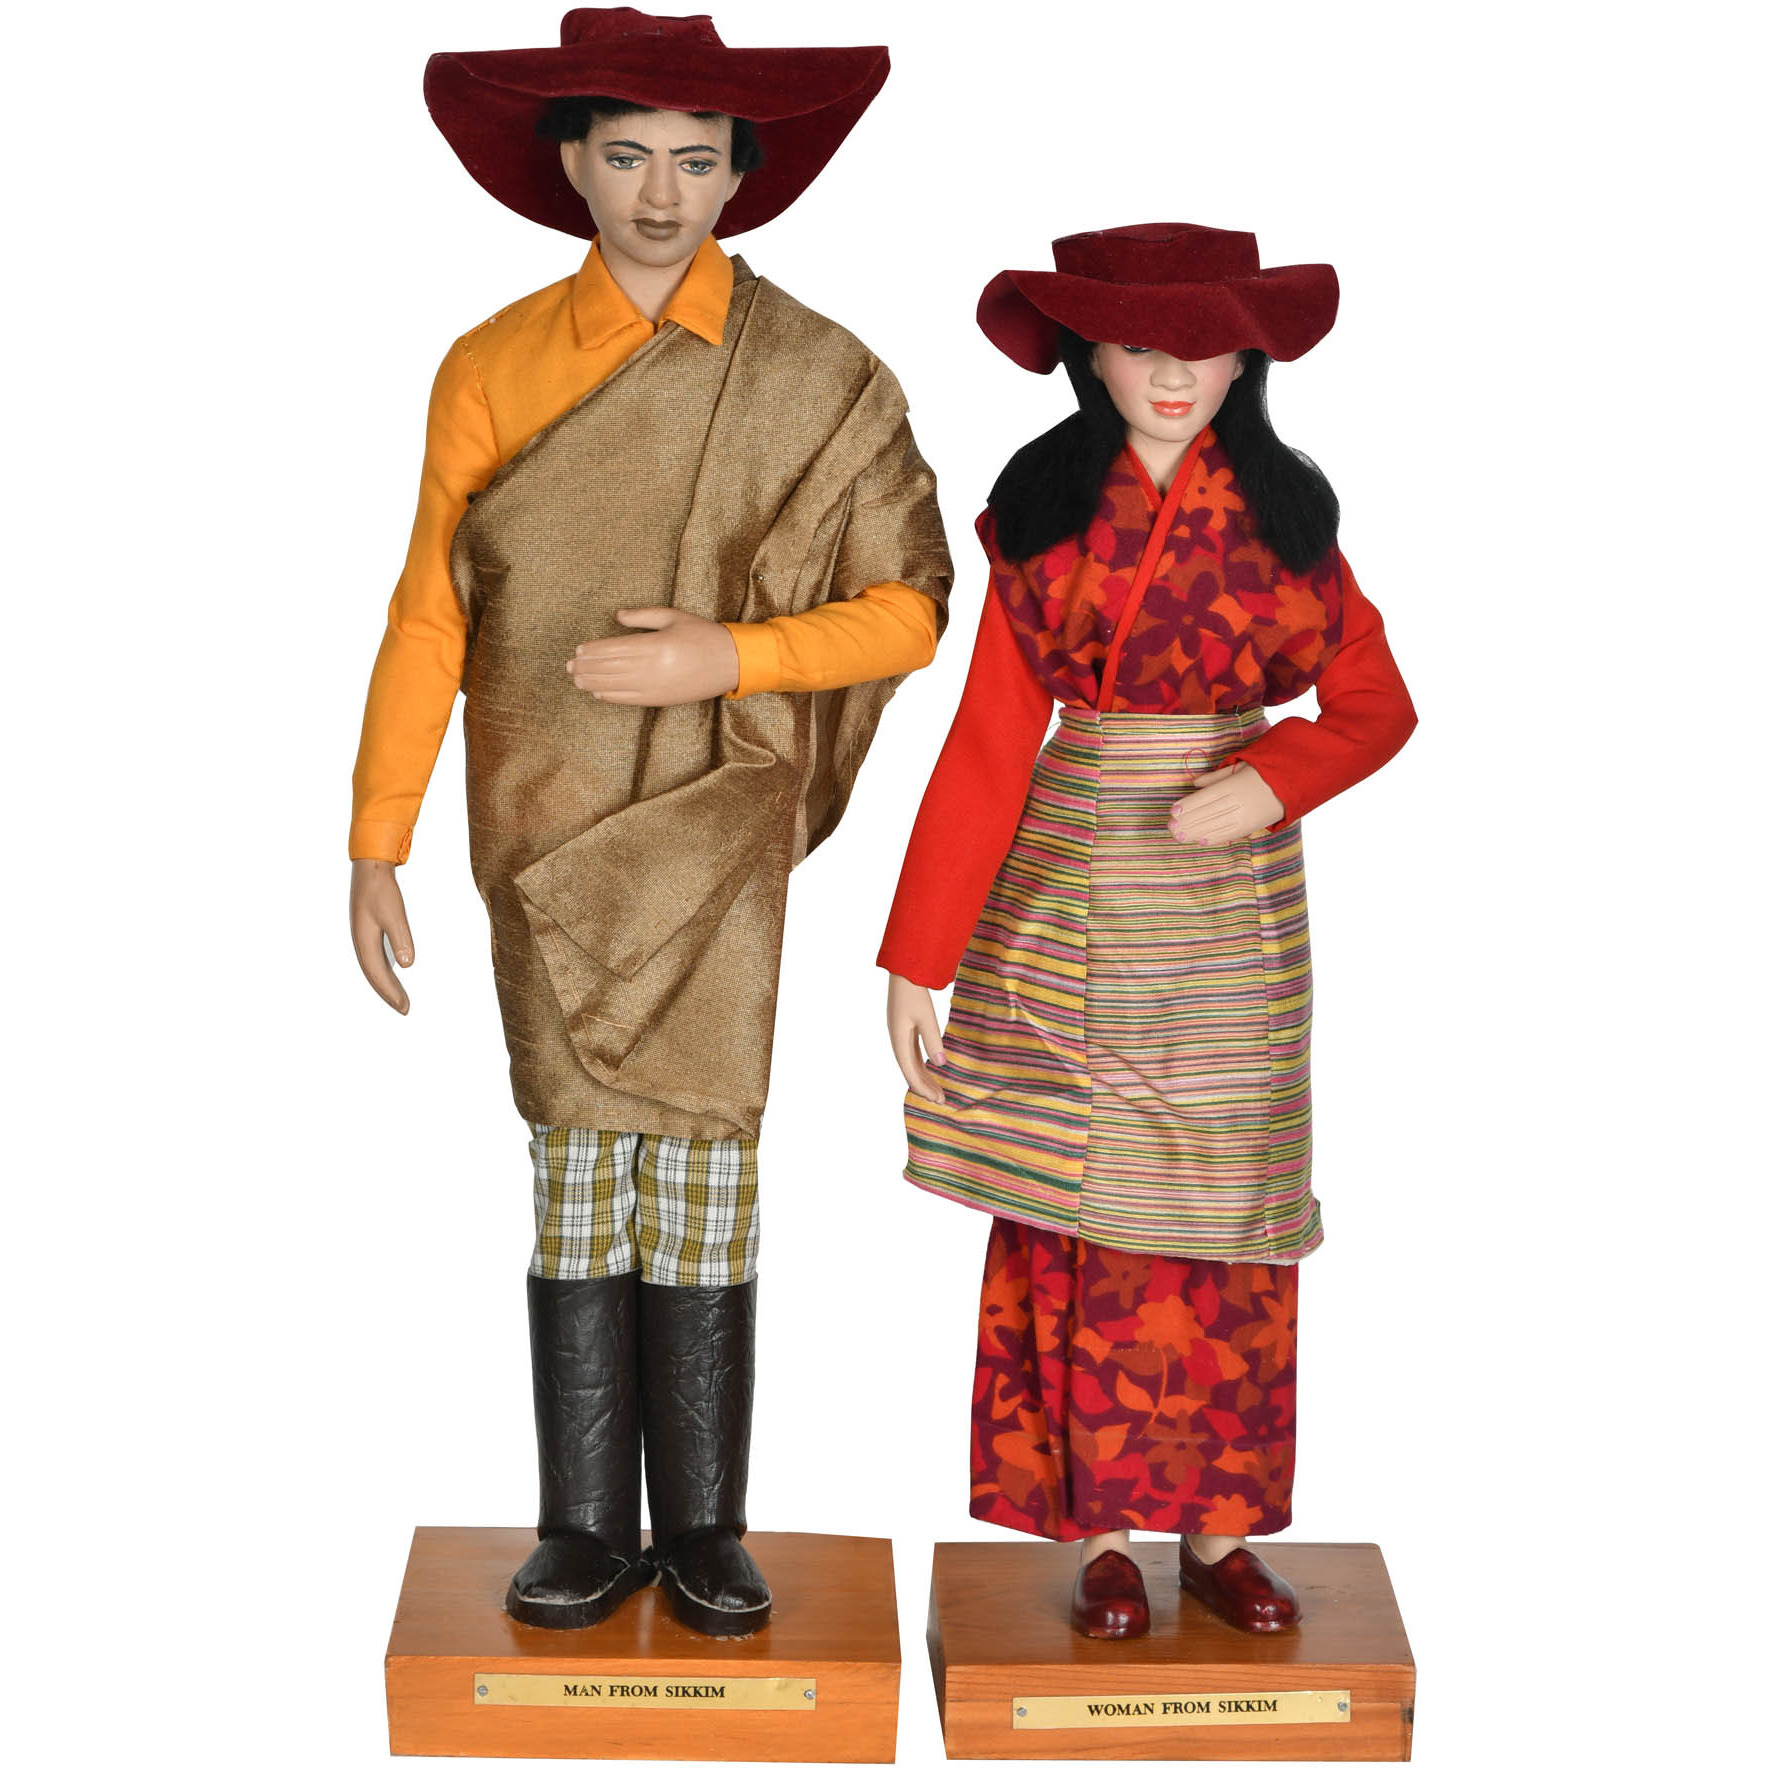 Man and Woman from Sikkim